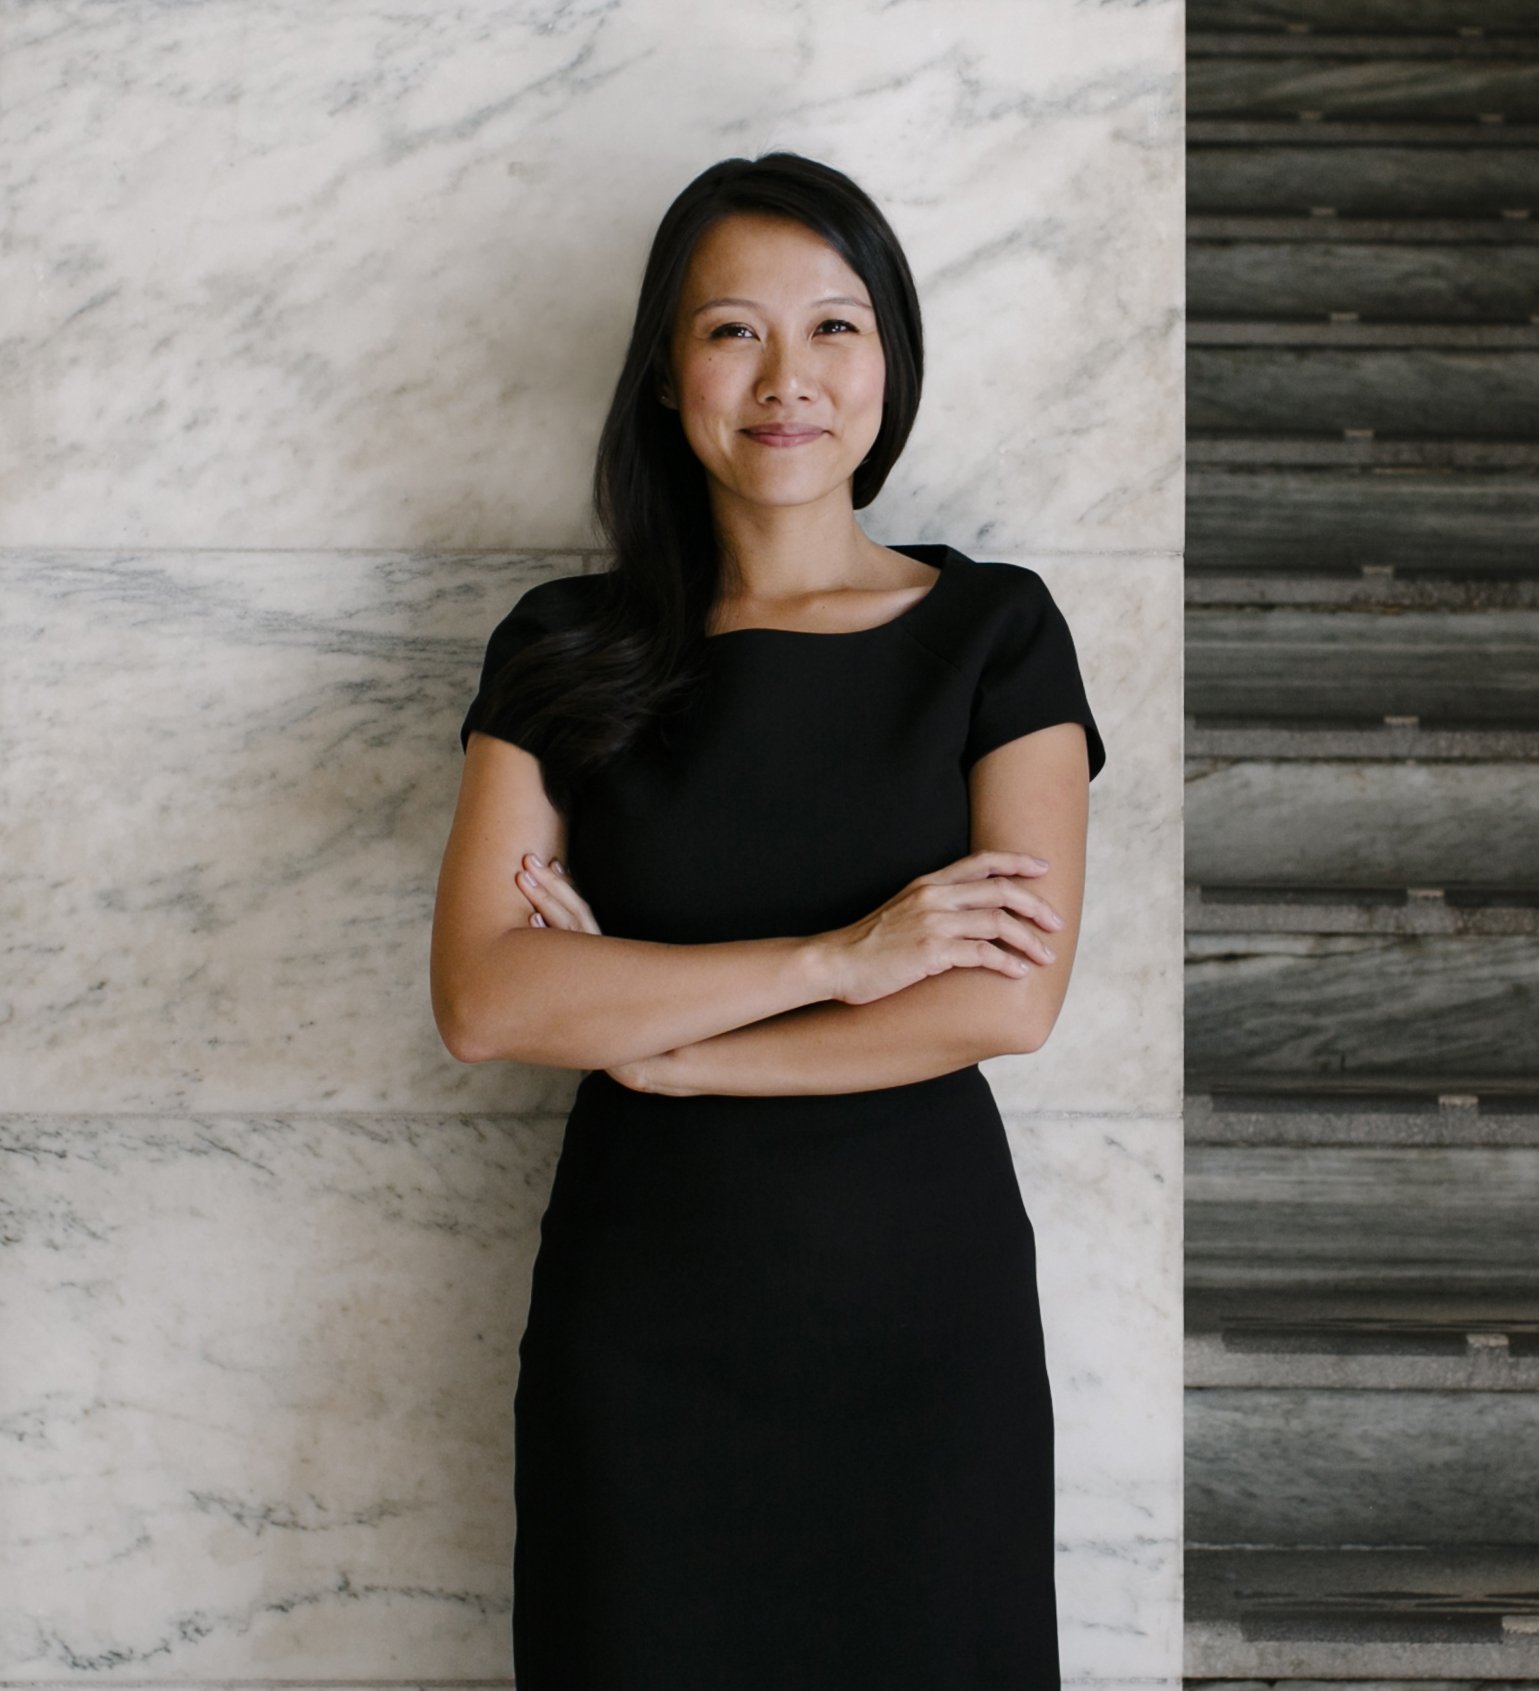 Alice Kittrell - Alice's resume boasts over a decade of experience in consulting and investment banking specifically in the real estate vertical. She was killing it at work,and from an outsider's perspective, on top of the world.Things are not always what they seem.